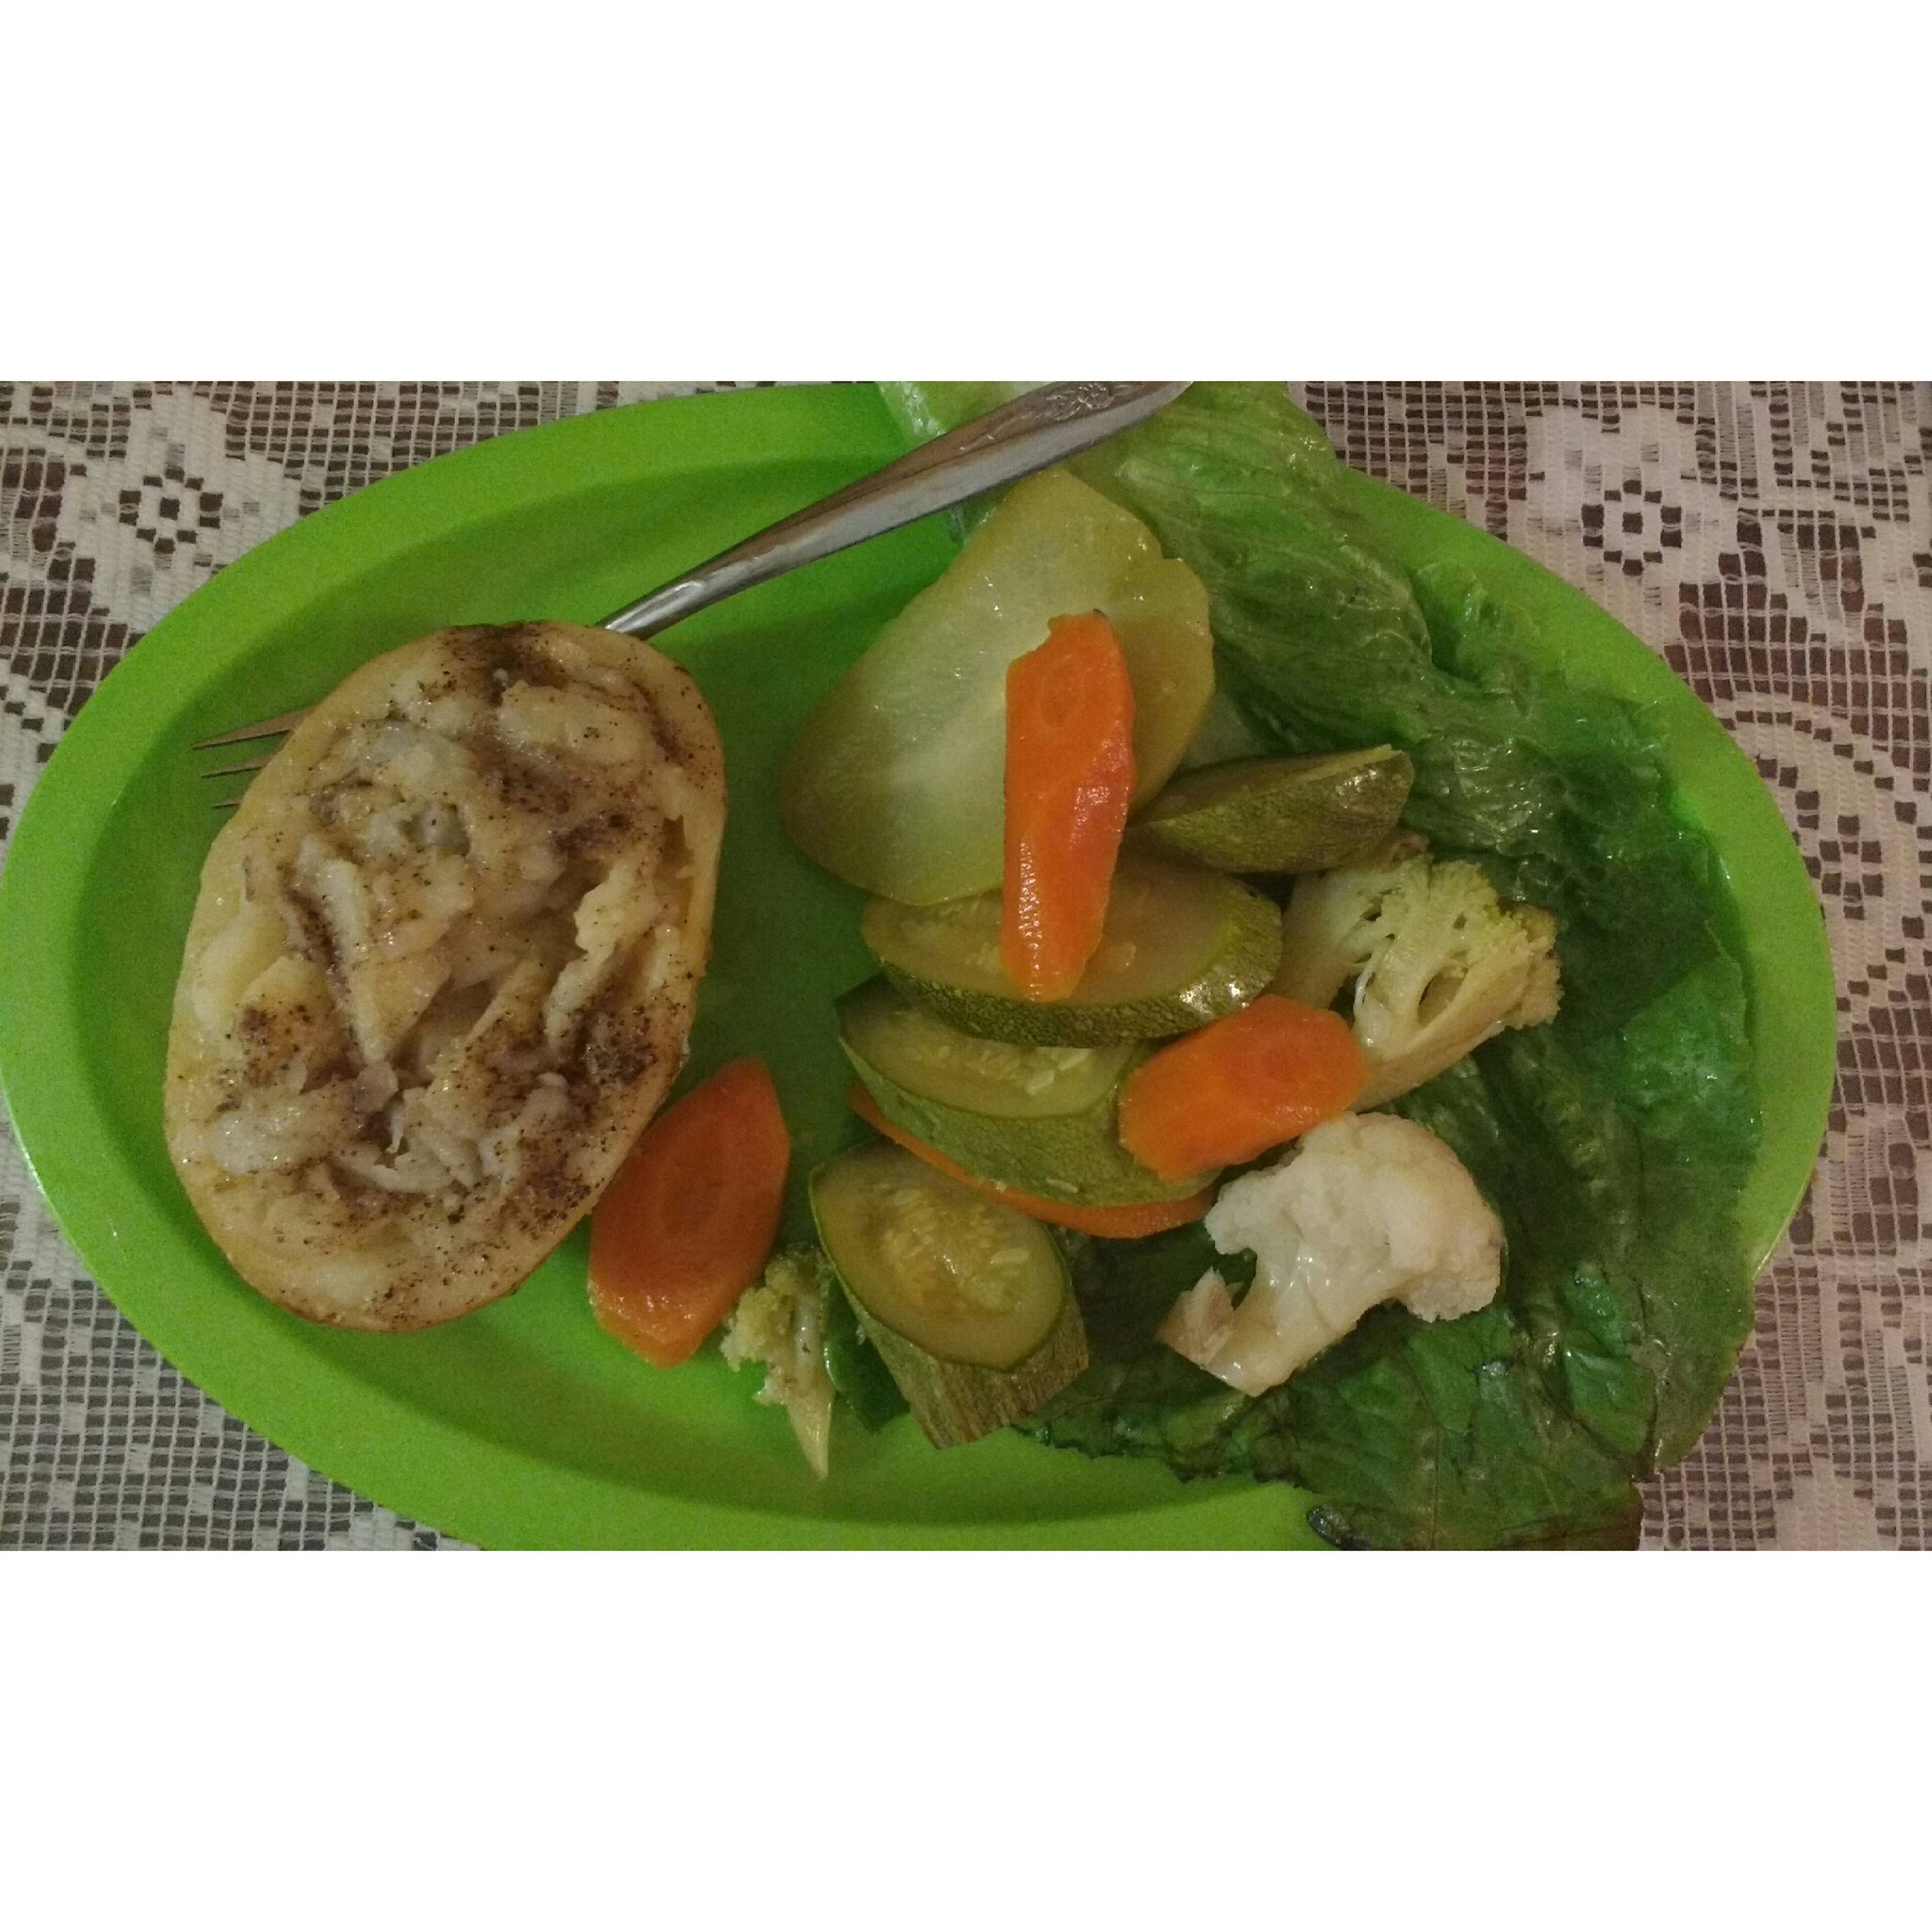 food and drink, food, healthy eating, freshness, green color, vegetable, ready-to-eat, cooked, appetizer, temptation, homemade, indulgence, meal, serving size, green, vegetarian food, no people